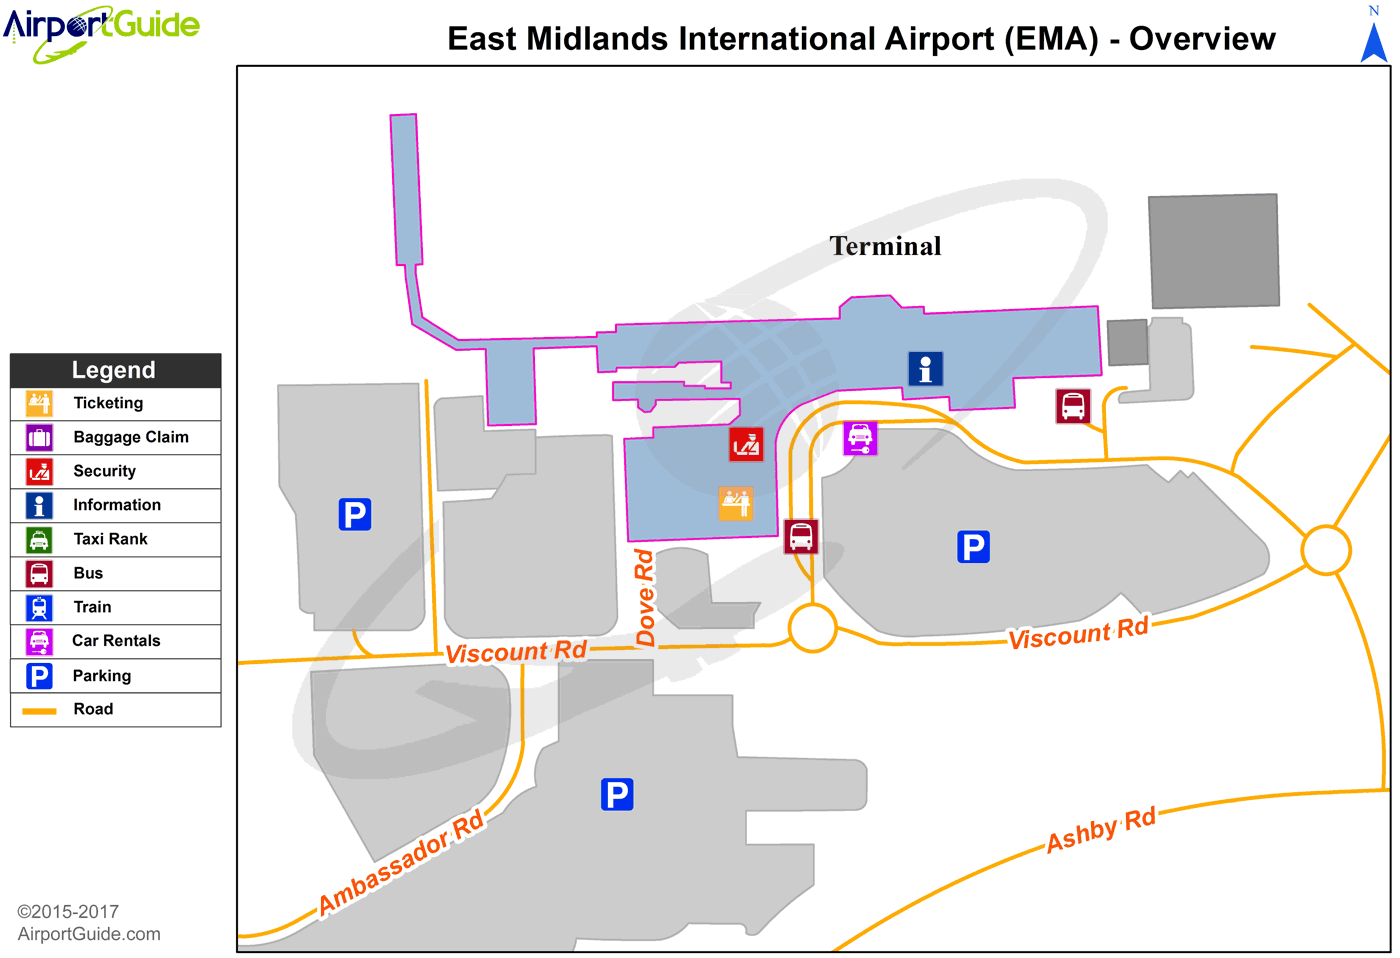 sacramento  sacramento international (smf) airport terminal map  overview airport terminal maps  airportguidecom  pinterest  internationalairport. sacramento  sacramento international (smf) airport terminal map